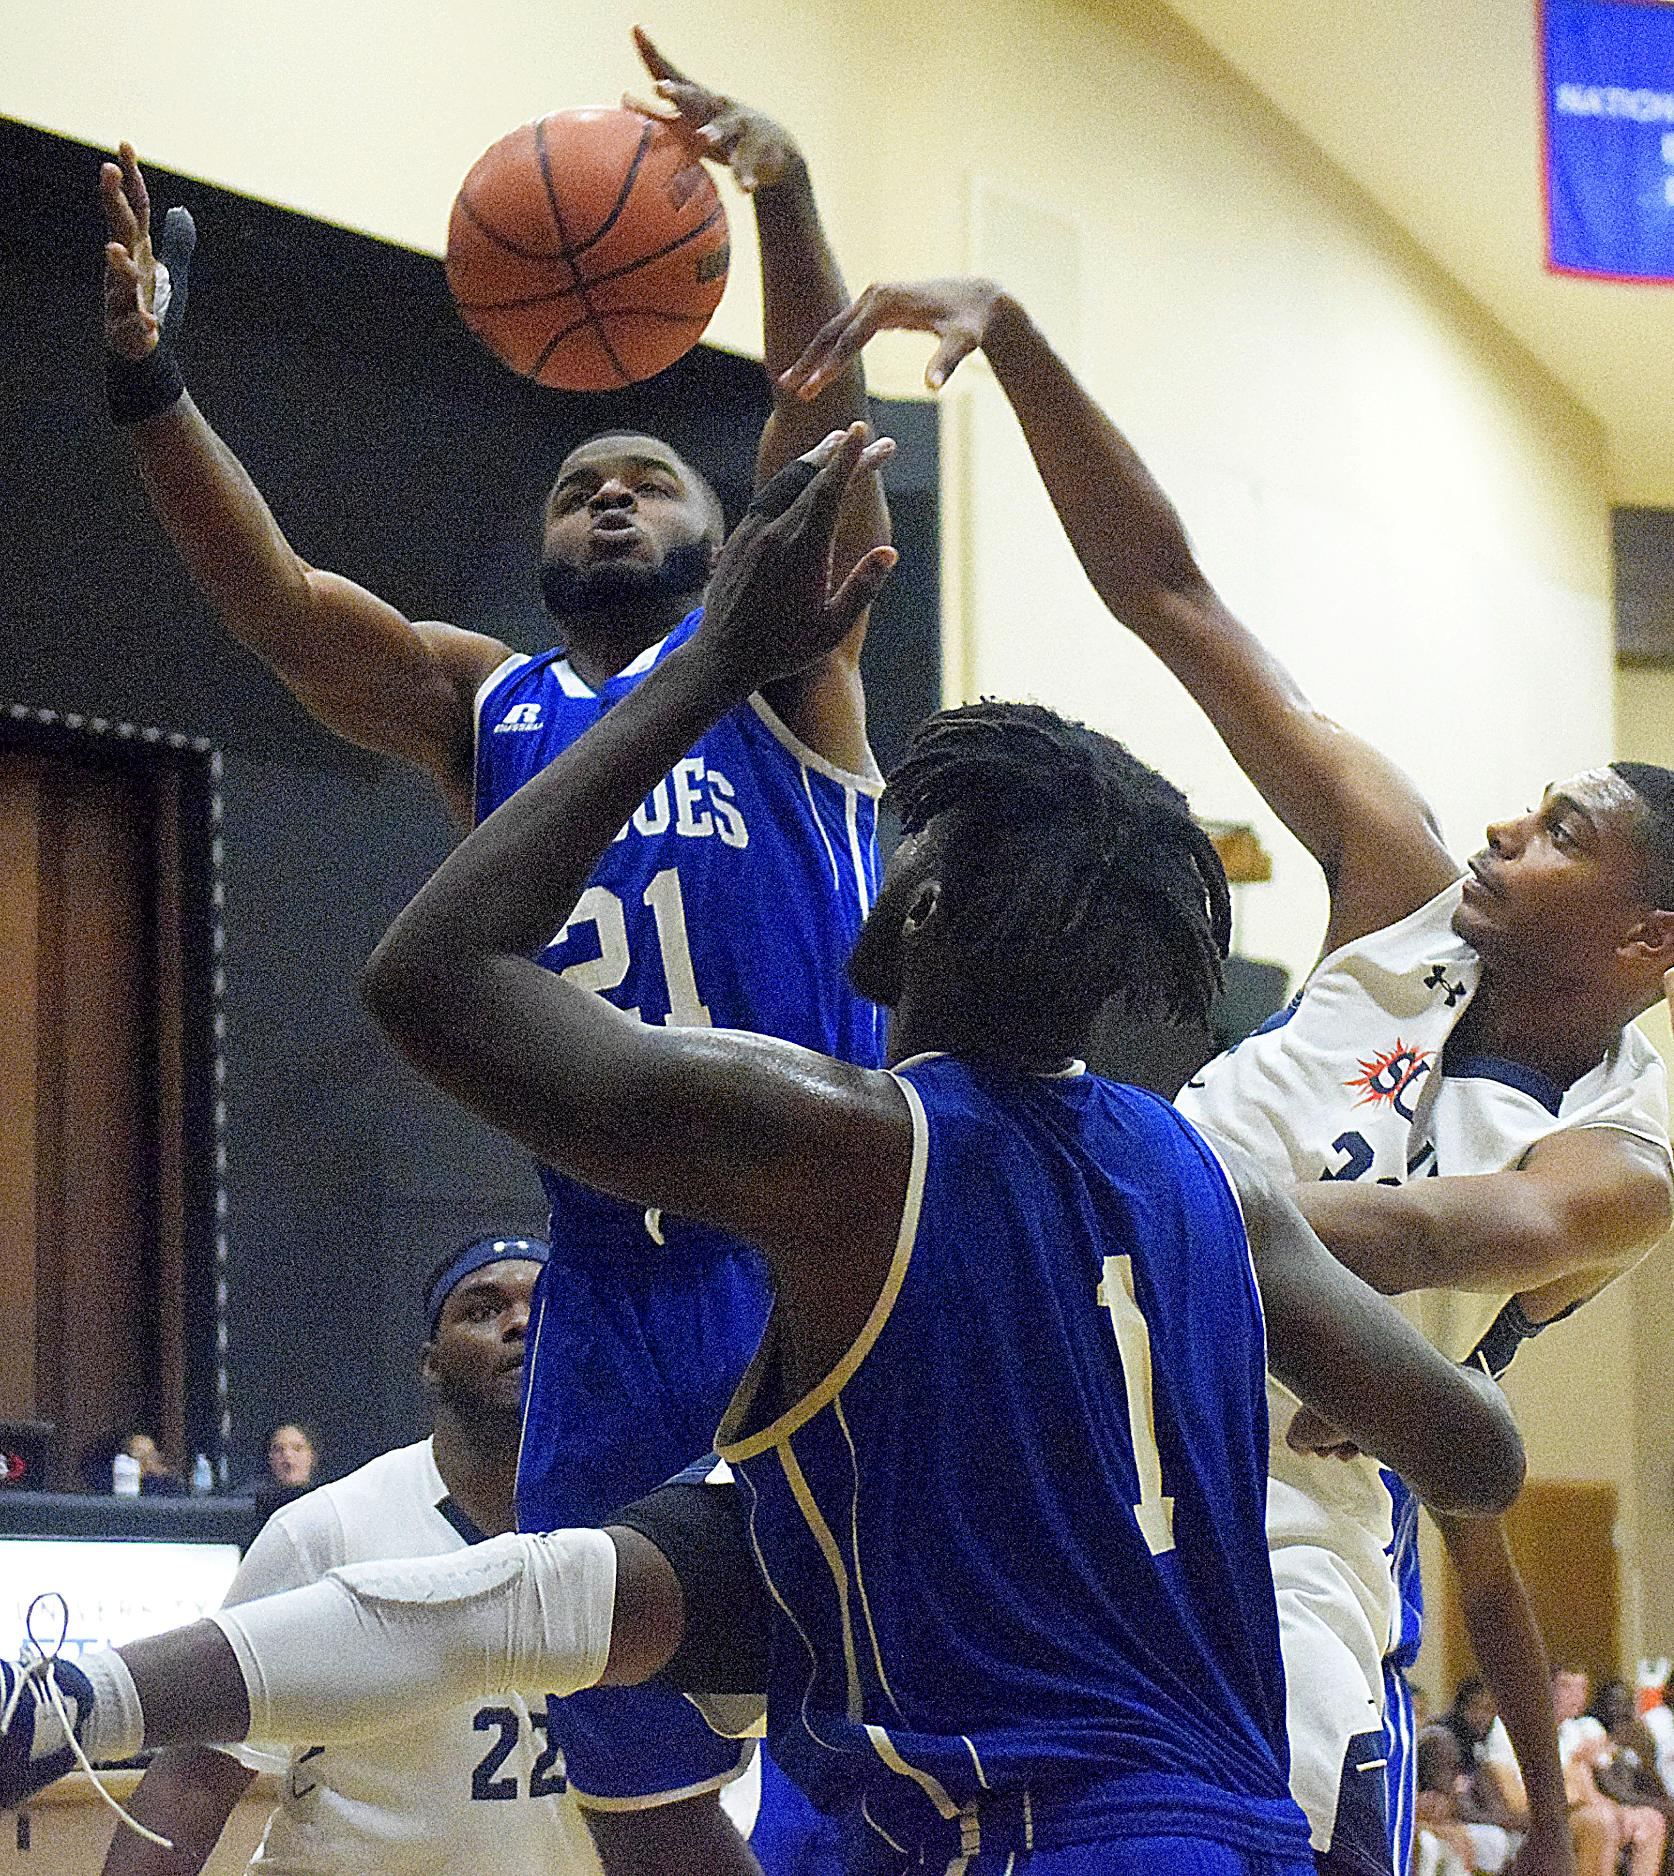 Shorthanded Mingoes drop three games at Orlando Tournament